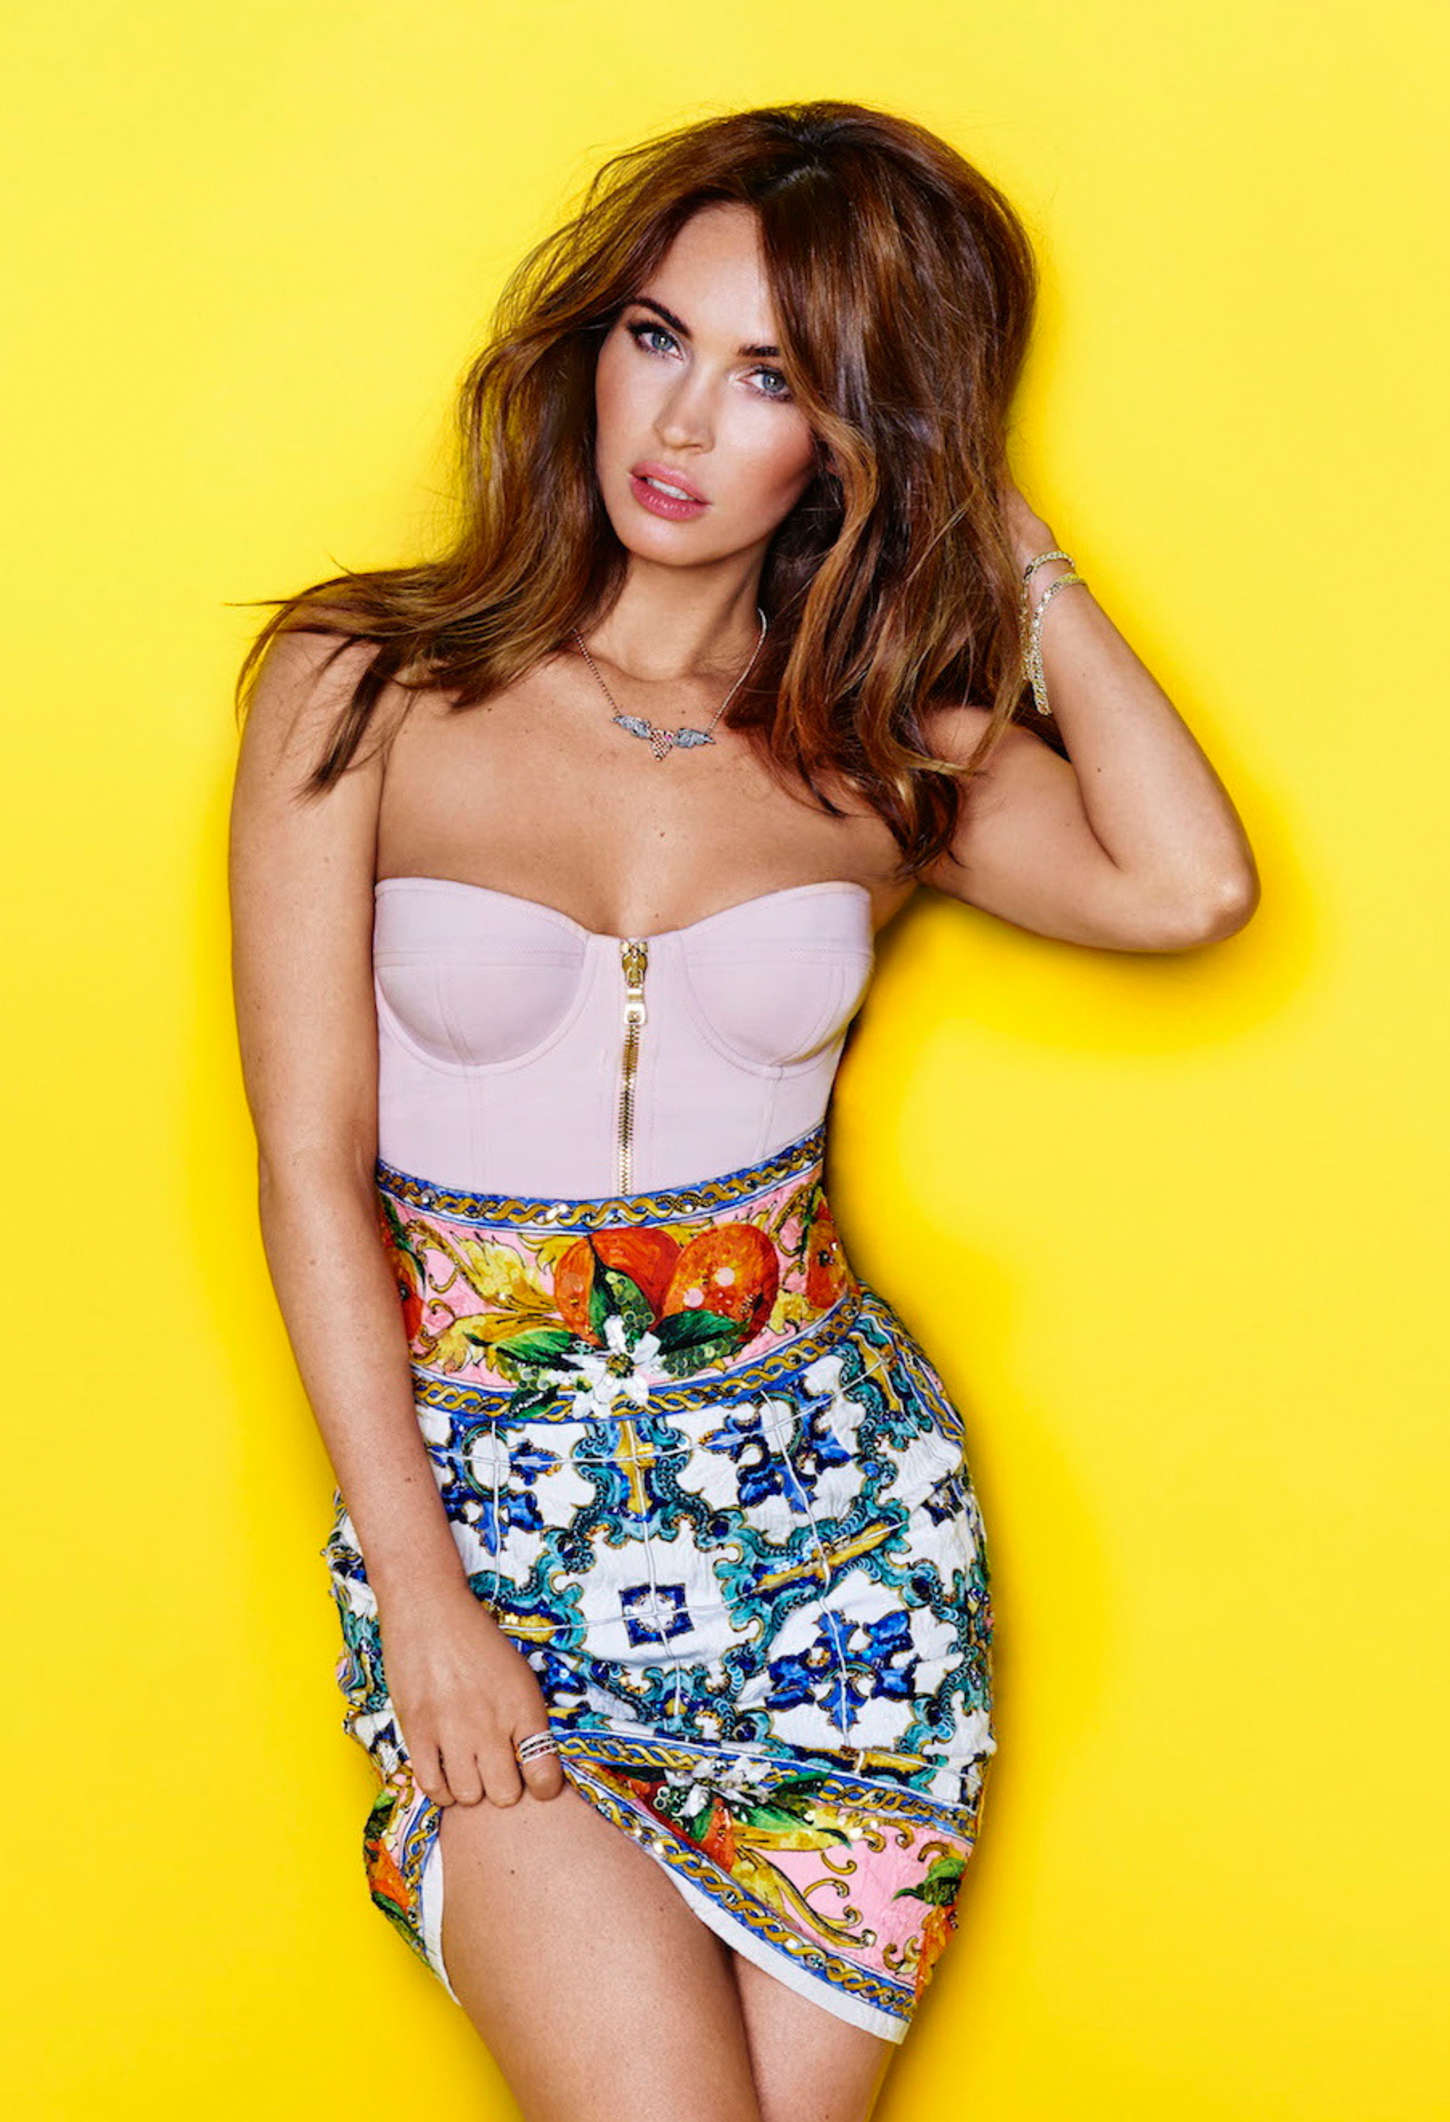 Megan-Fox:-Cosmopolitan-USA-2014--04.jpg